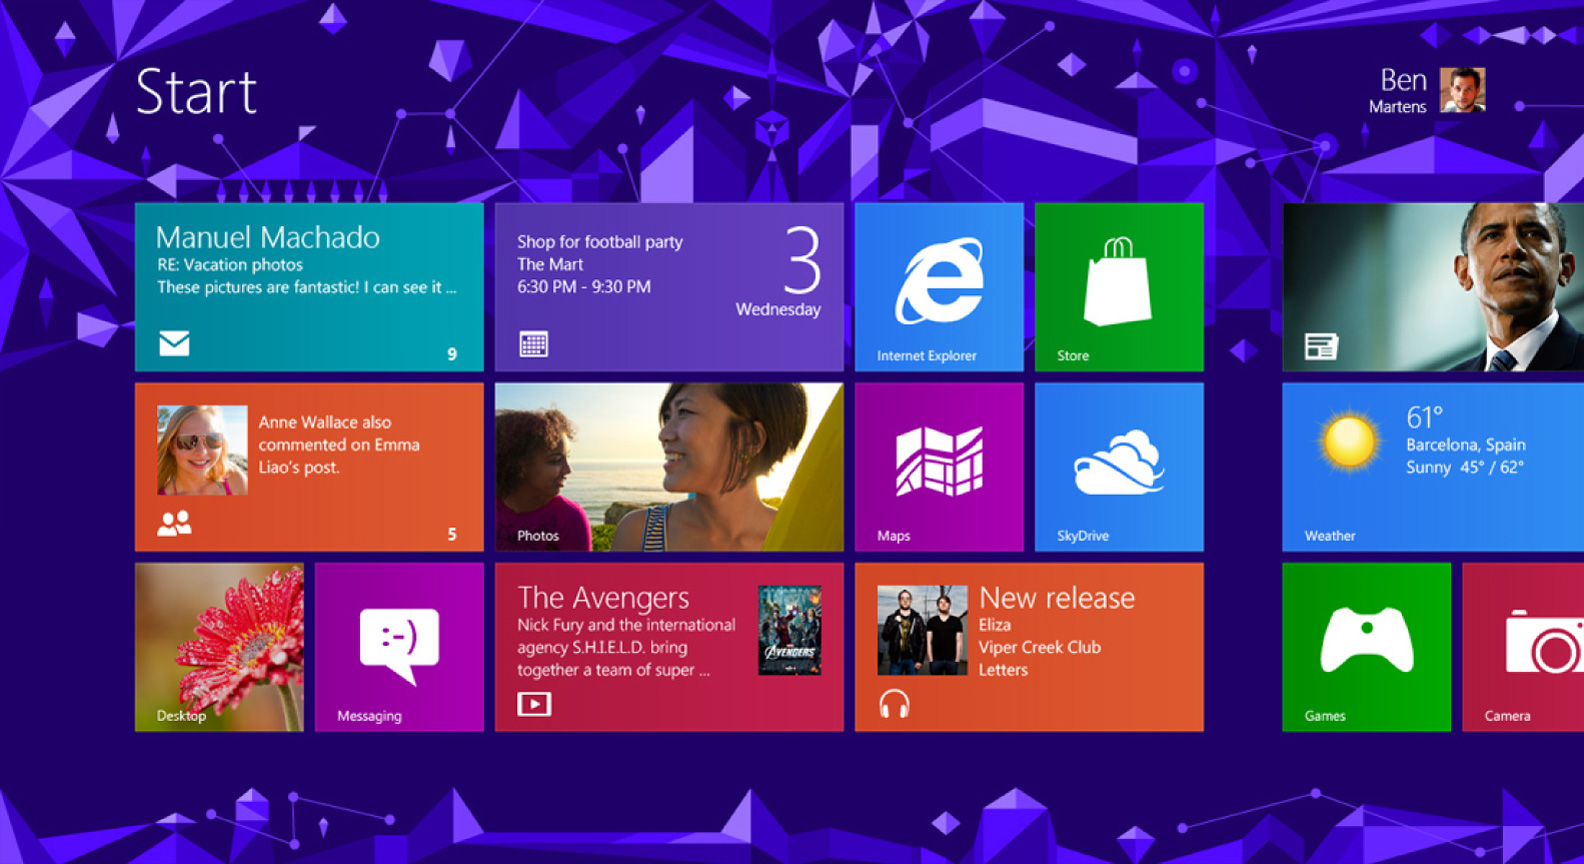 Windows 8 Start screen background design